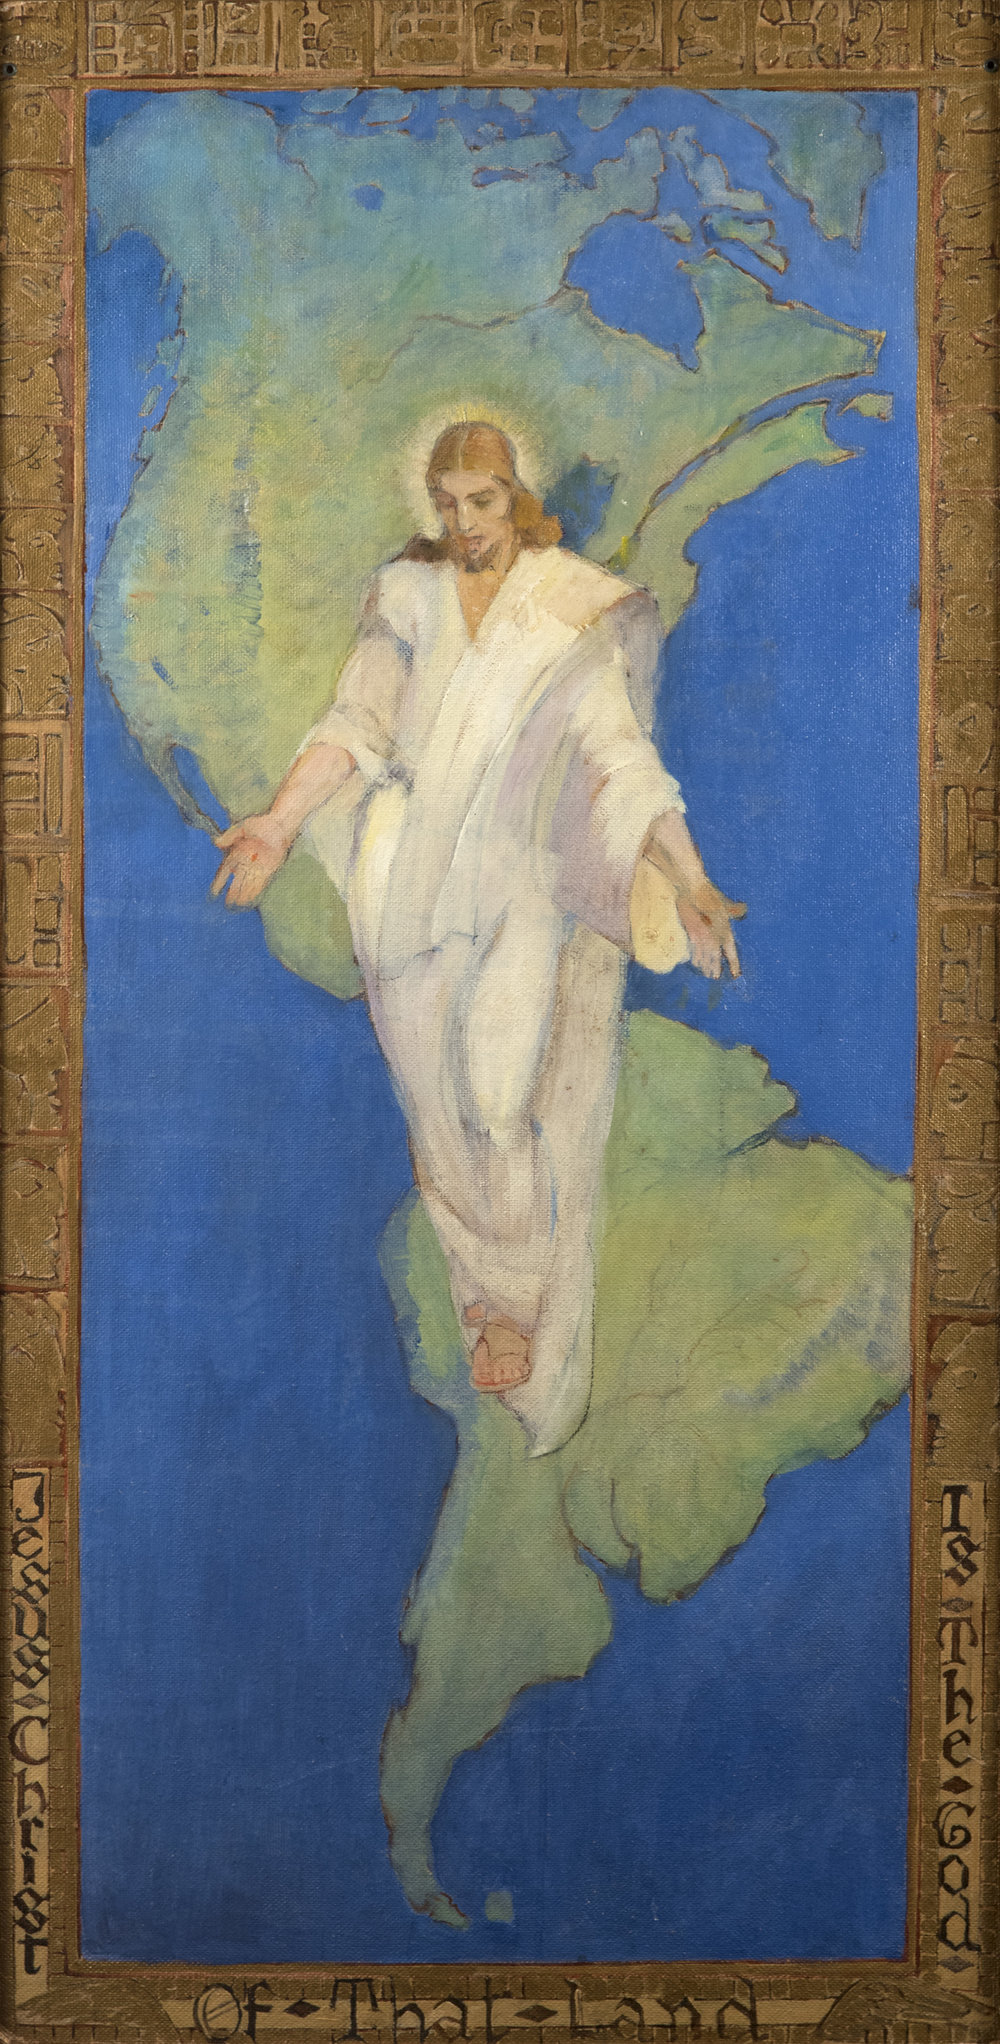 Jesus Christ is the God of that Land  by MINERVA TEICHERT .   Oil on Board. 48 x 24 in. Collection of Springville Museum of Art